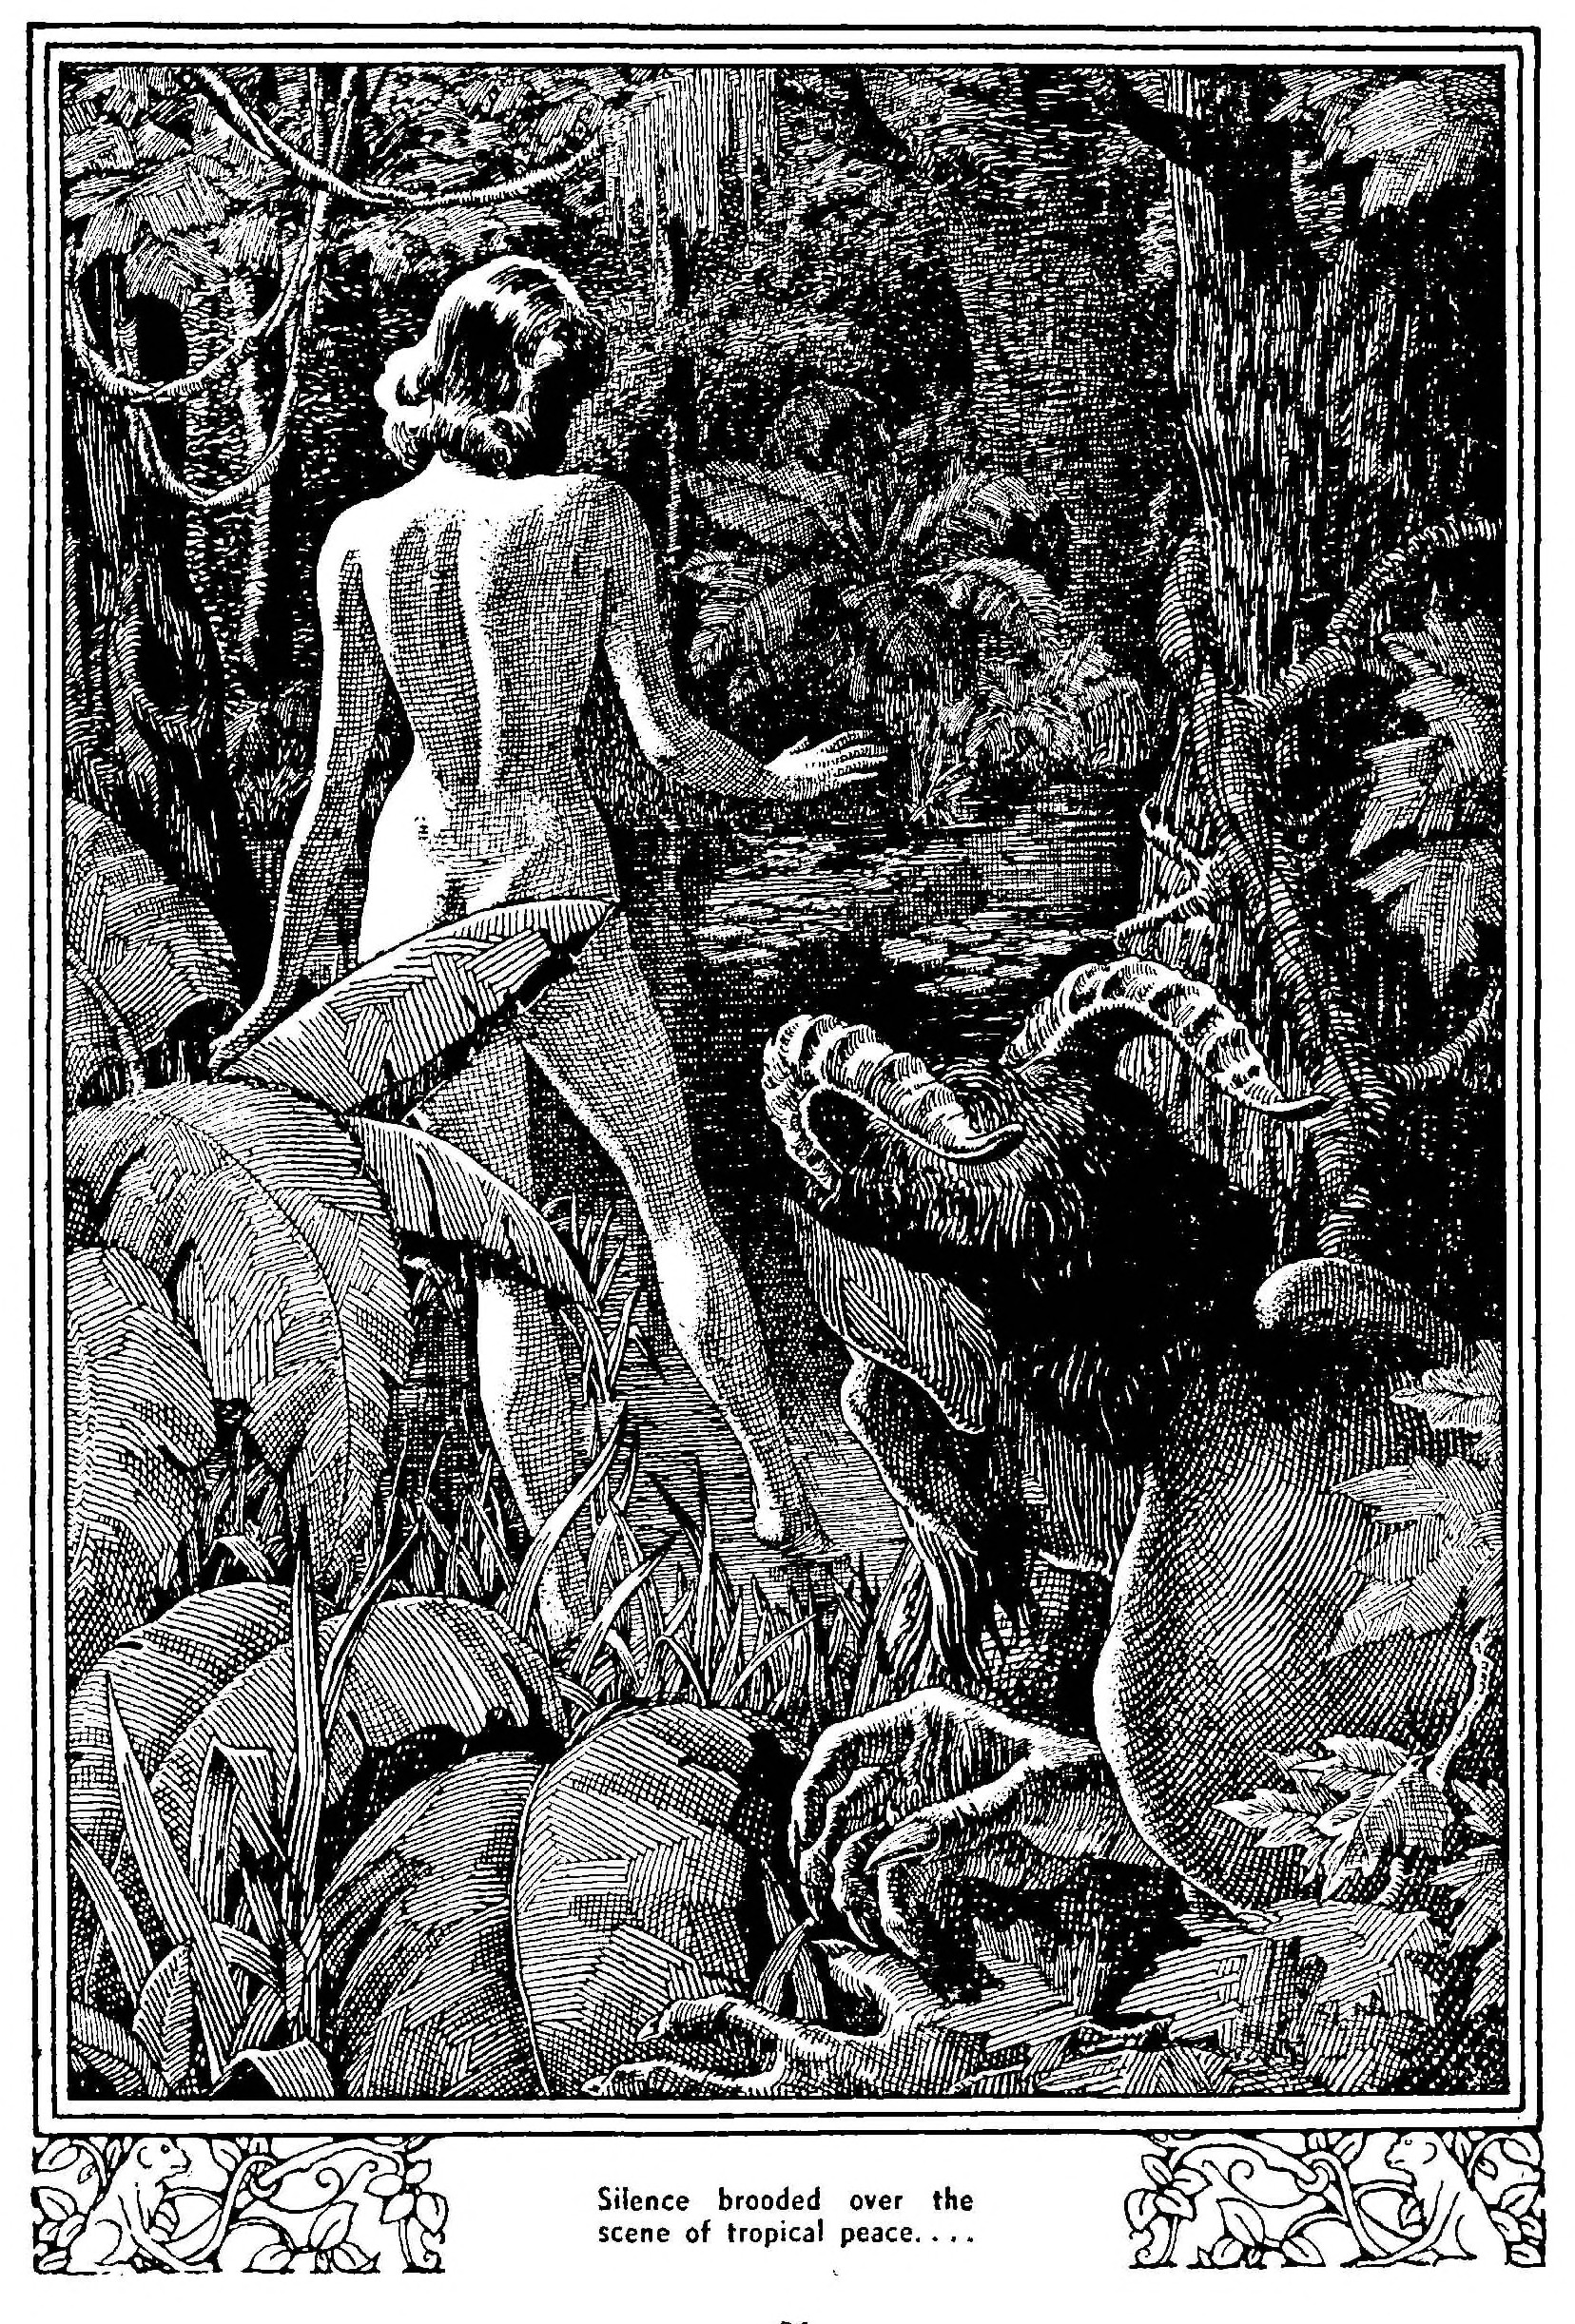 A black-and-white ink illustration of a nude woman i in a tropical scene.  An ominous clawlike hand can be seen at the base of the illustration.